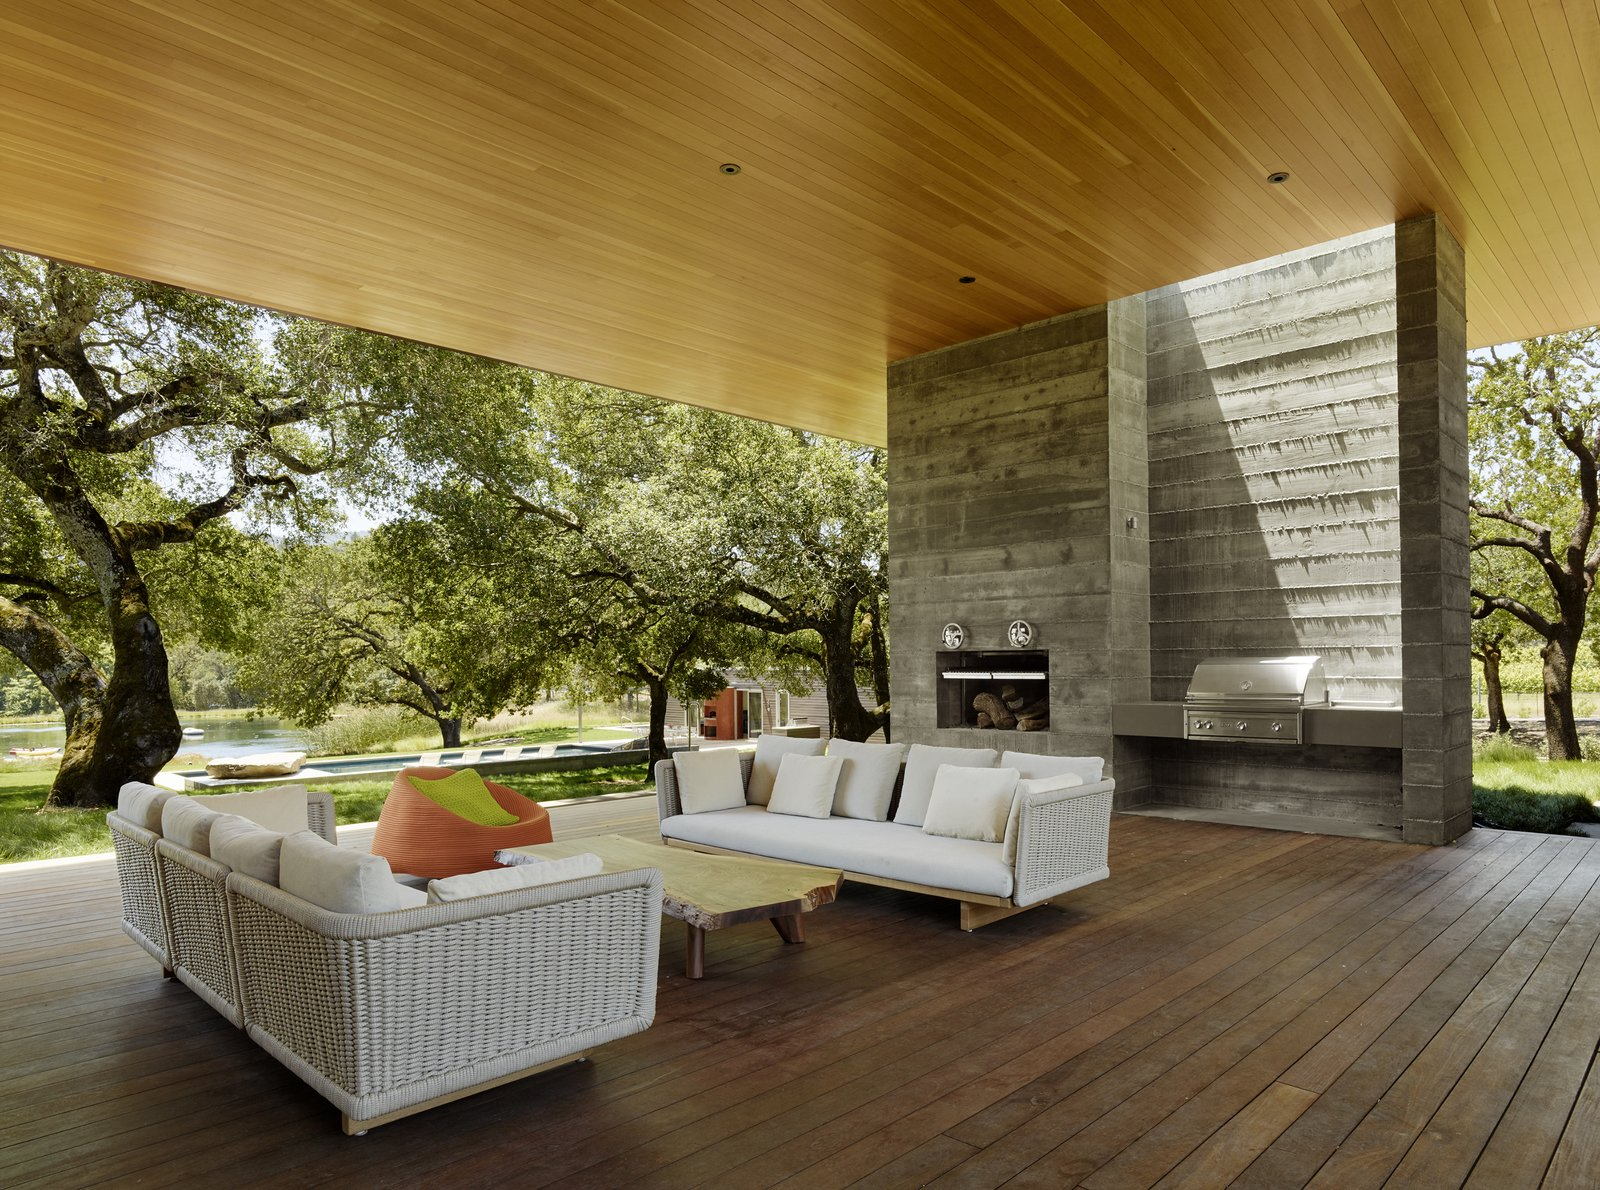 #TurnbullGriffinHaesloop #outdoor #exterior #landscape #barbecue  Sonoma Residence by Turnbull Griffin Haesloop Architects